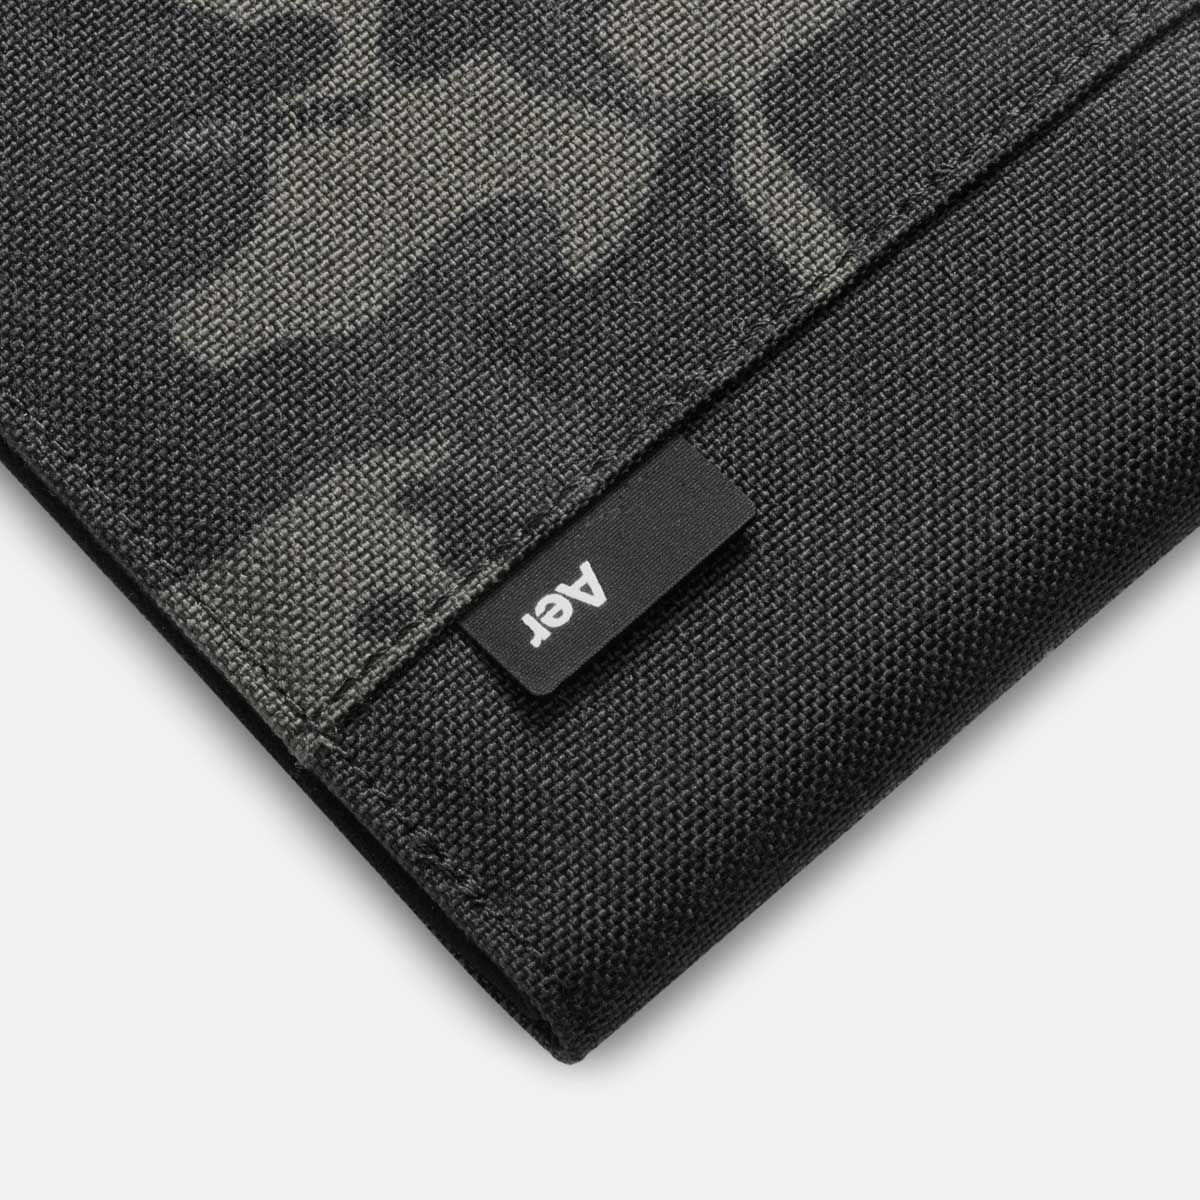 44001_travelwallet_blackcamo_label.jpg